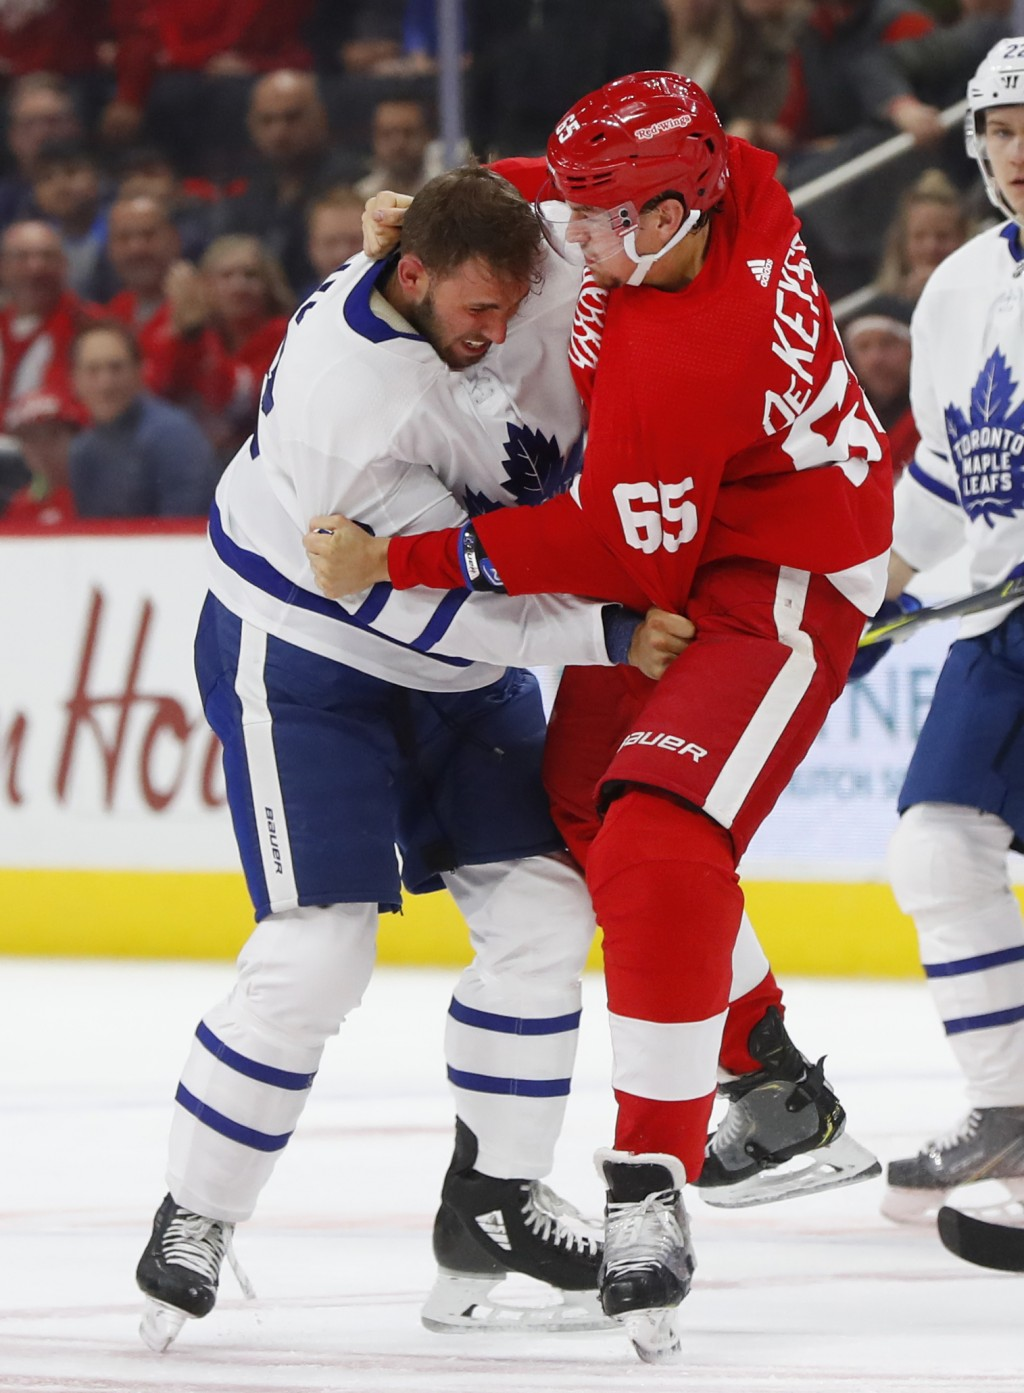 Toronto Maple Leafs left wing Josh Leivo (32) and Detroit Red Wings defenseman Danny DeKeyser (65) fight during the first period of an NHL hockey game